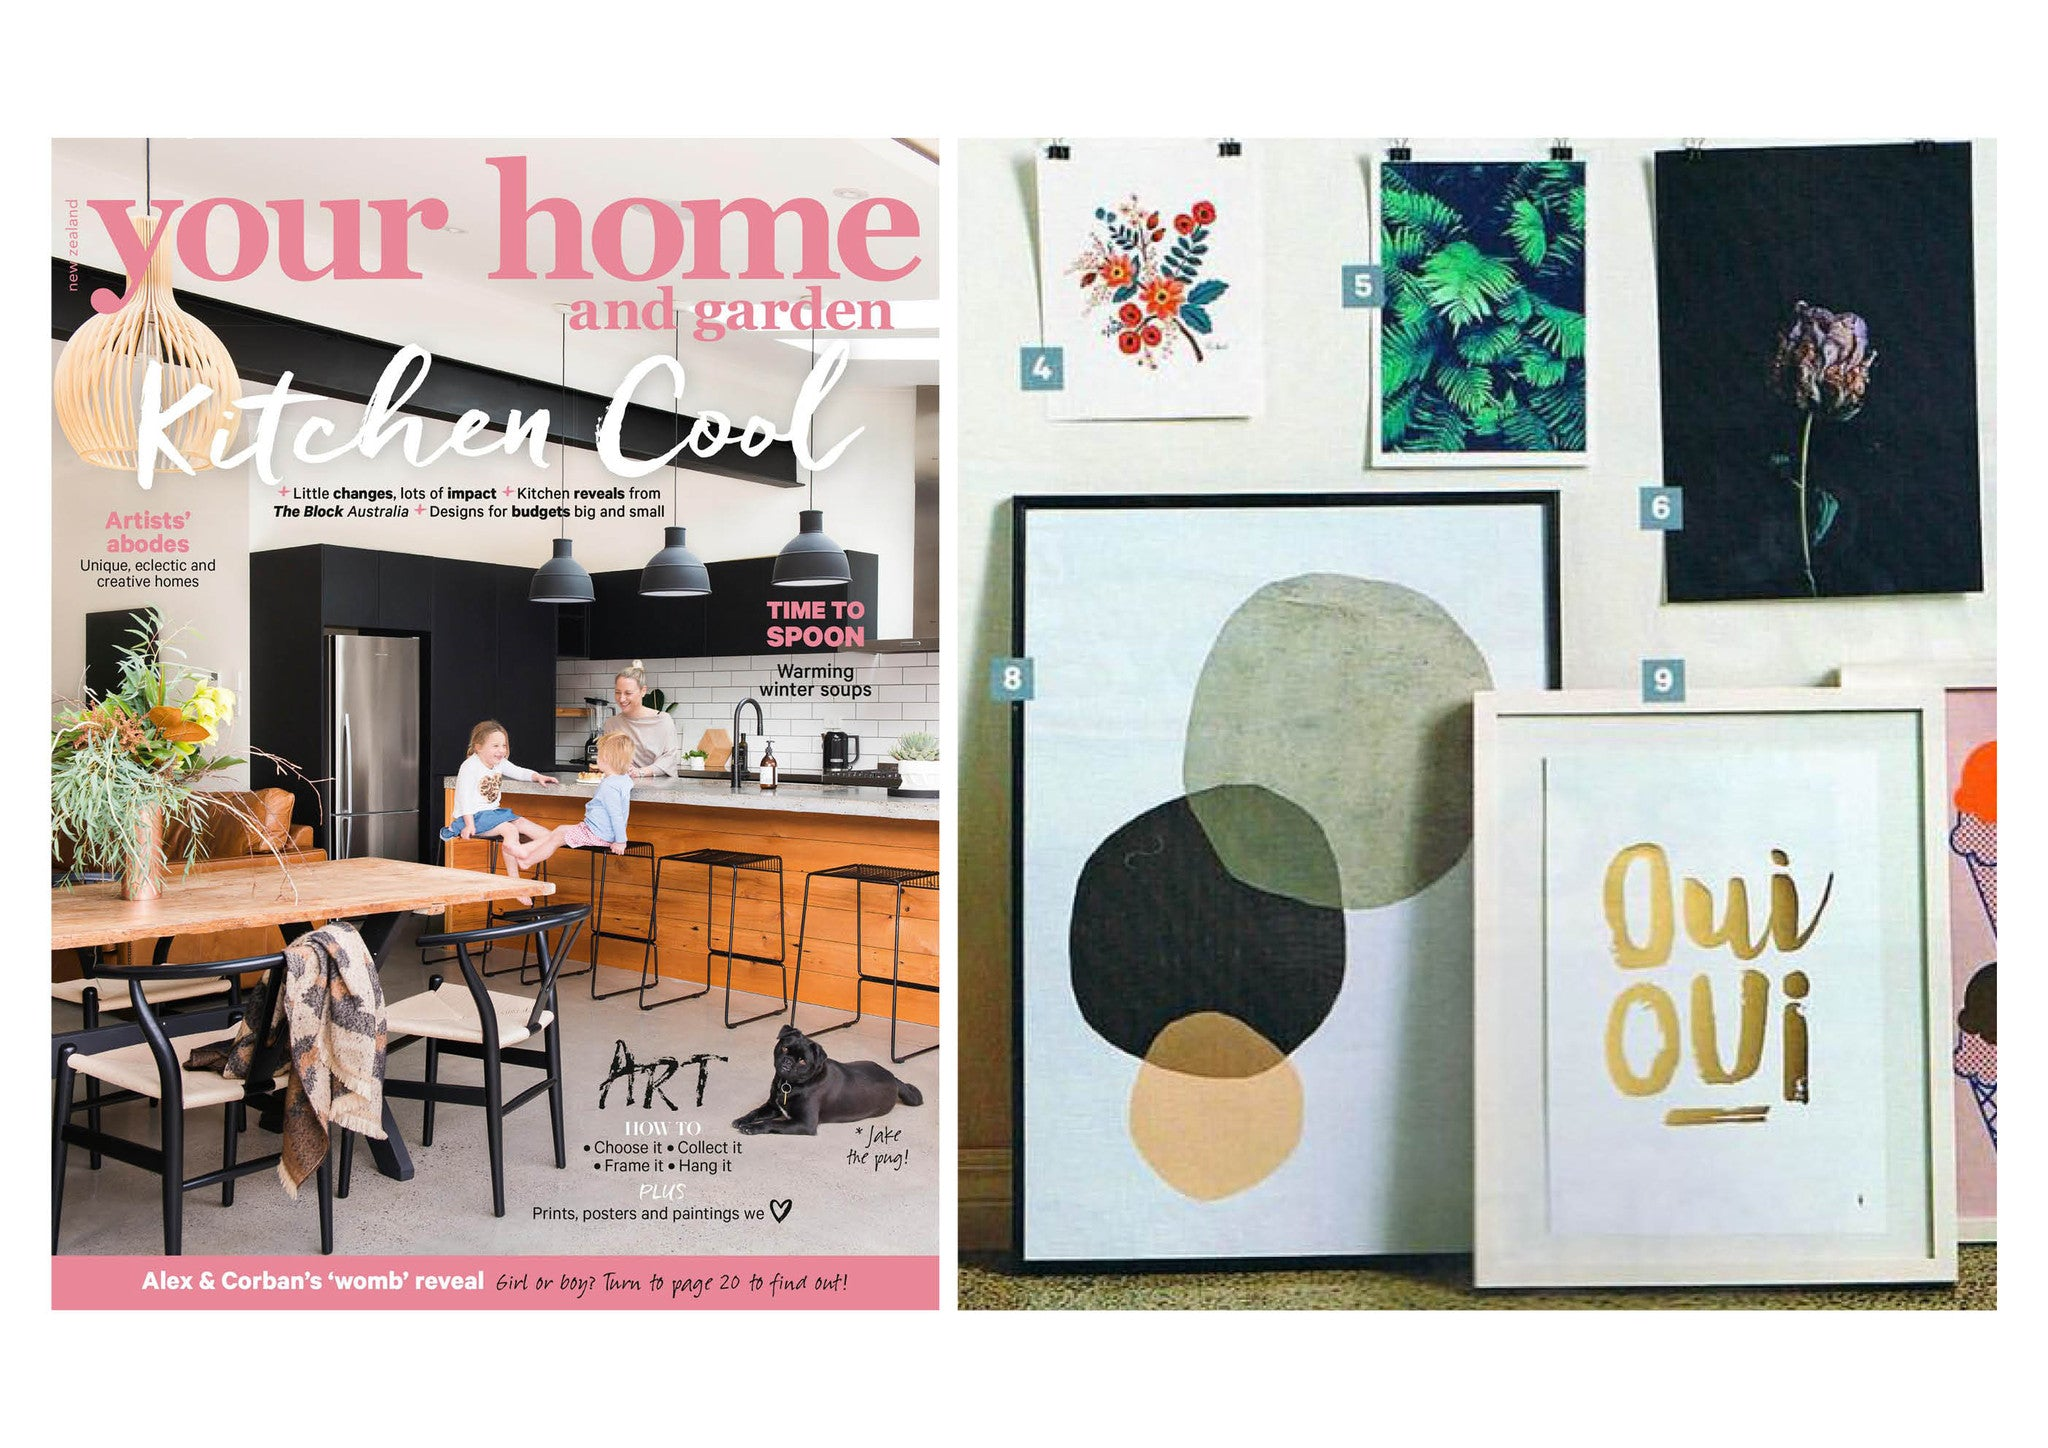 WALL ART ROUND UP - YOUR HOME & GARDEN MAGAZINE JULY 2016